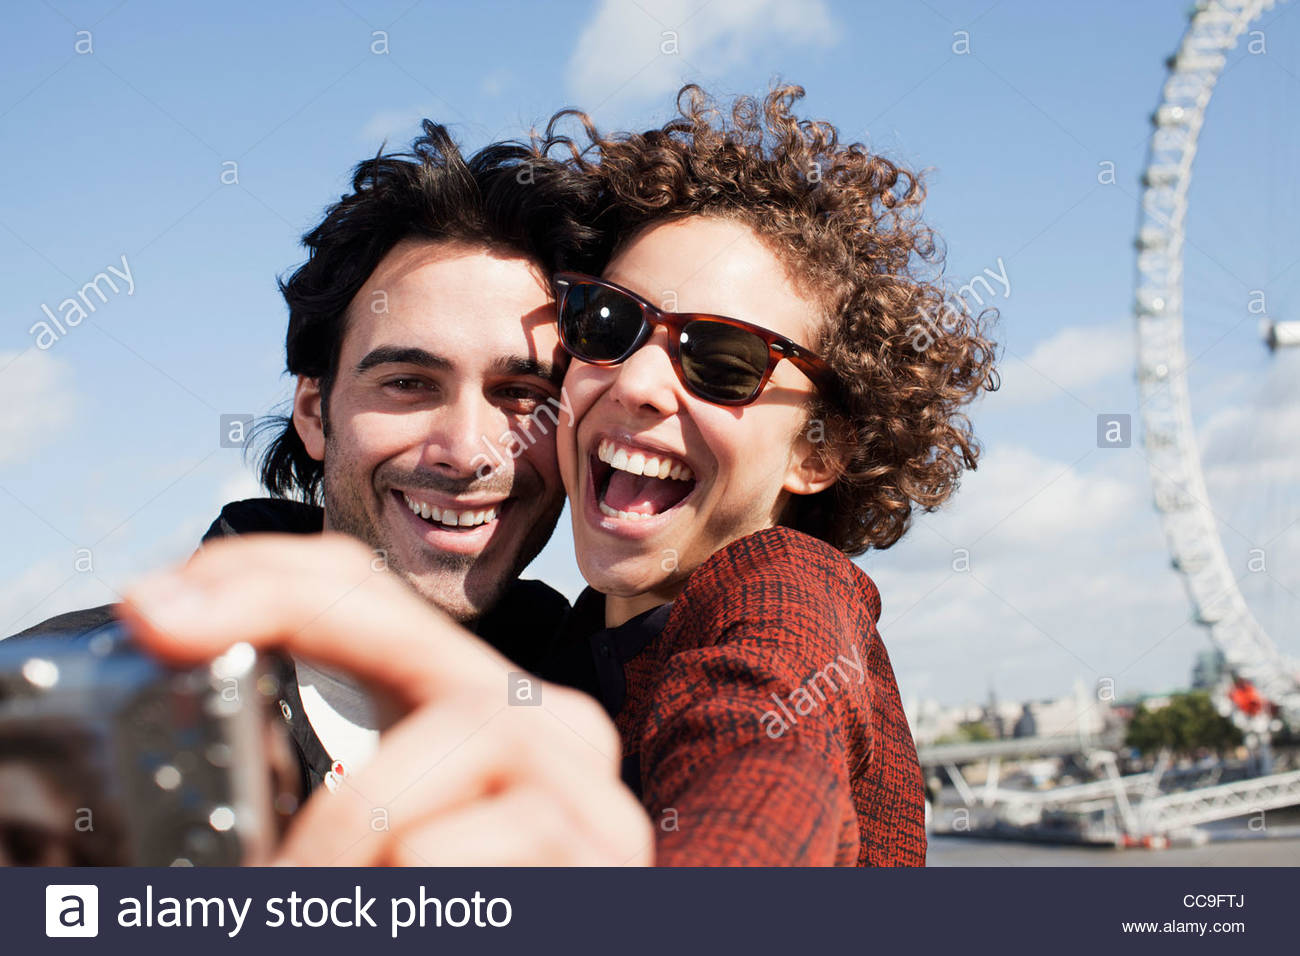 Happy couple taking self-portrait with digital camera near London Eye - Stock Image